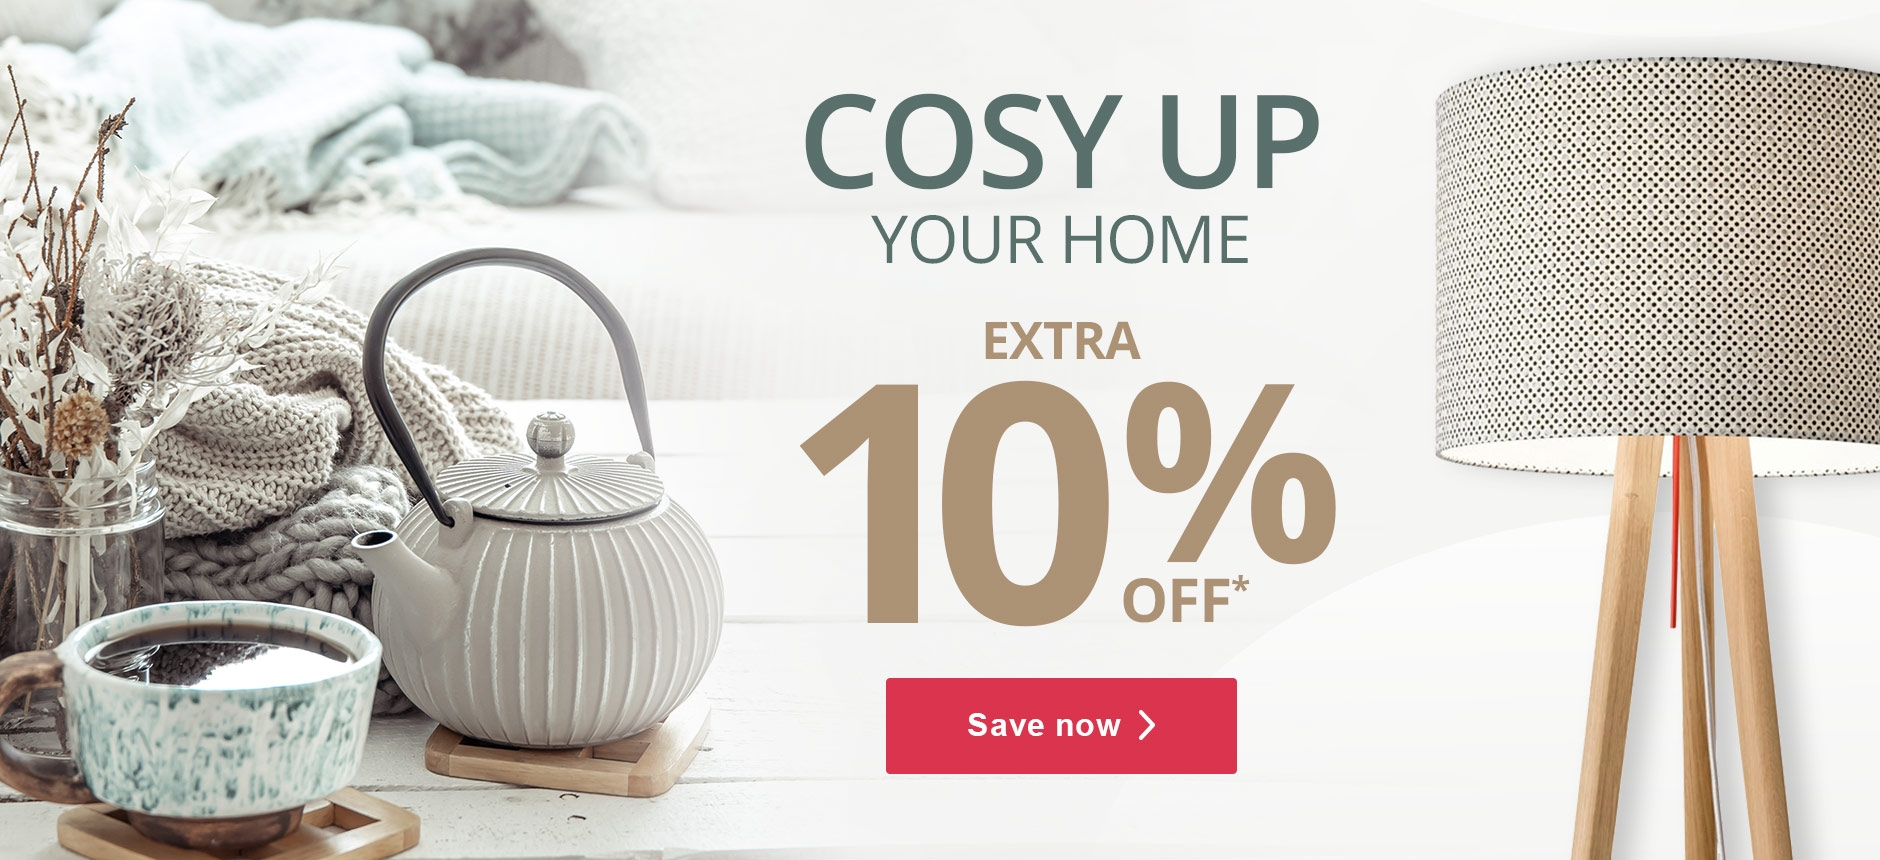 Cosy up your home